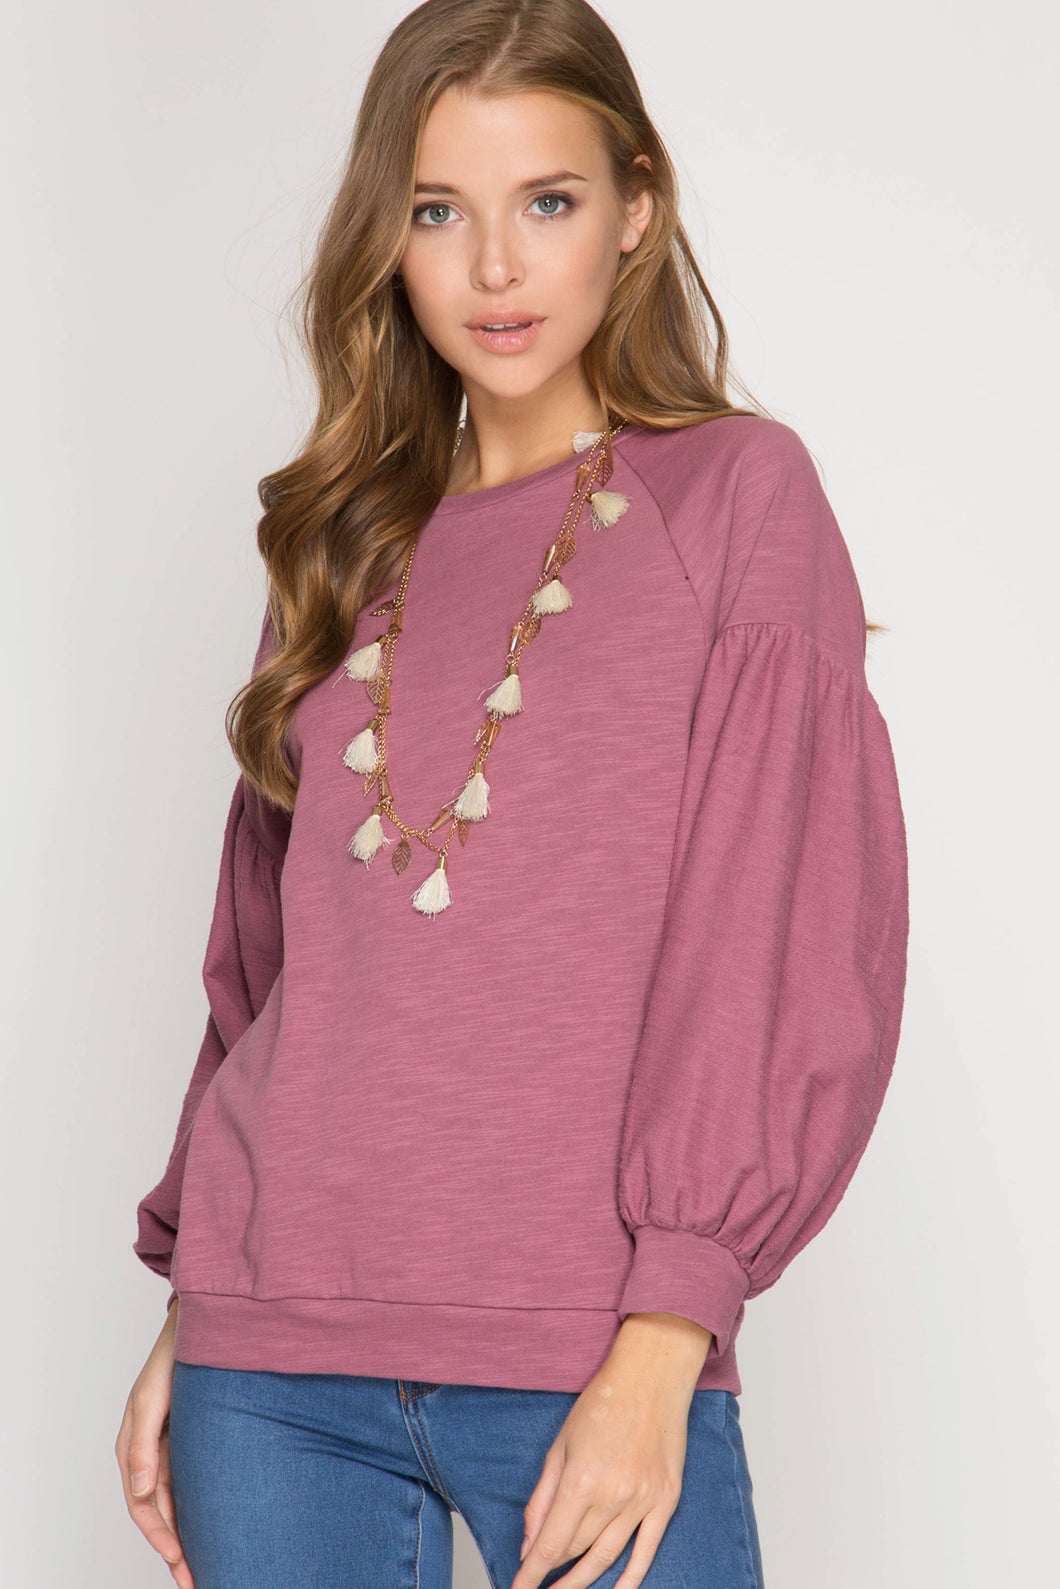 Balloon Sleeve Top